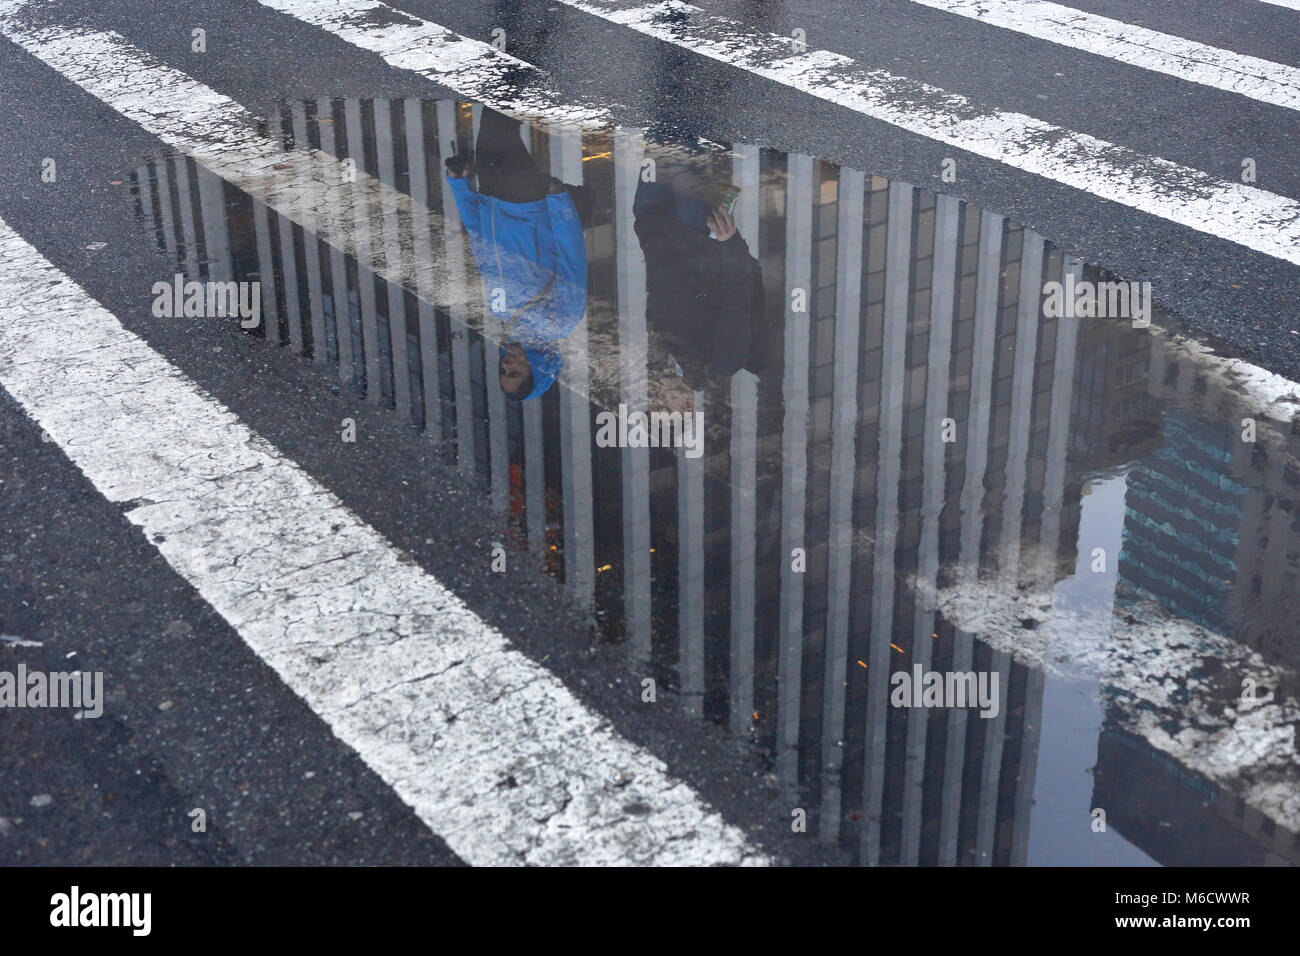 Reflection of the General Motors building in a puddle on New York's Fifth Avenue Stock Photo